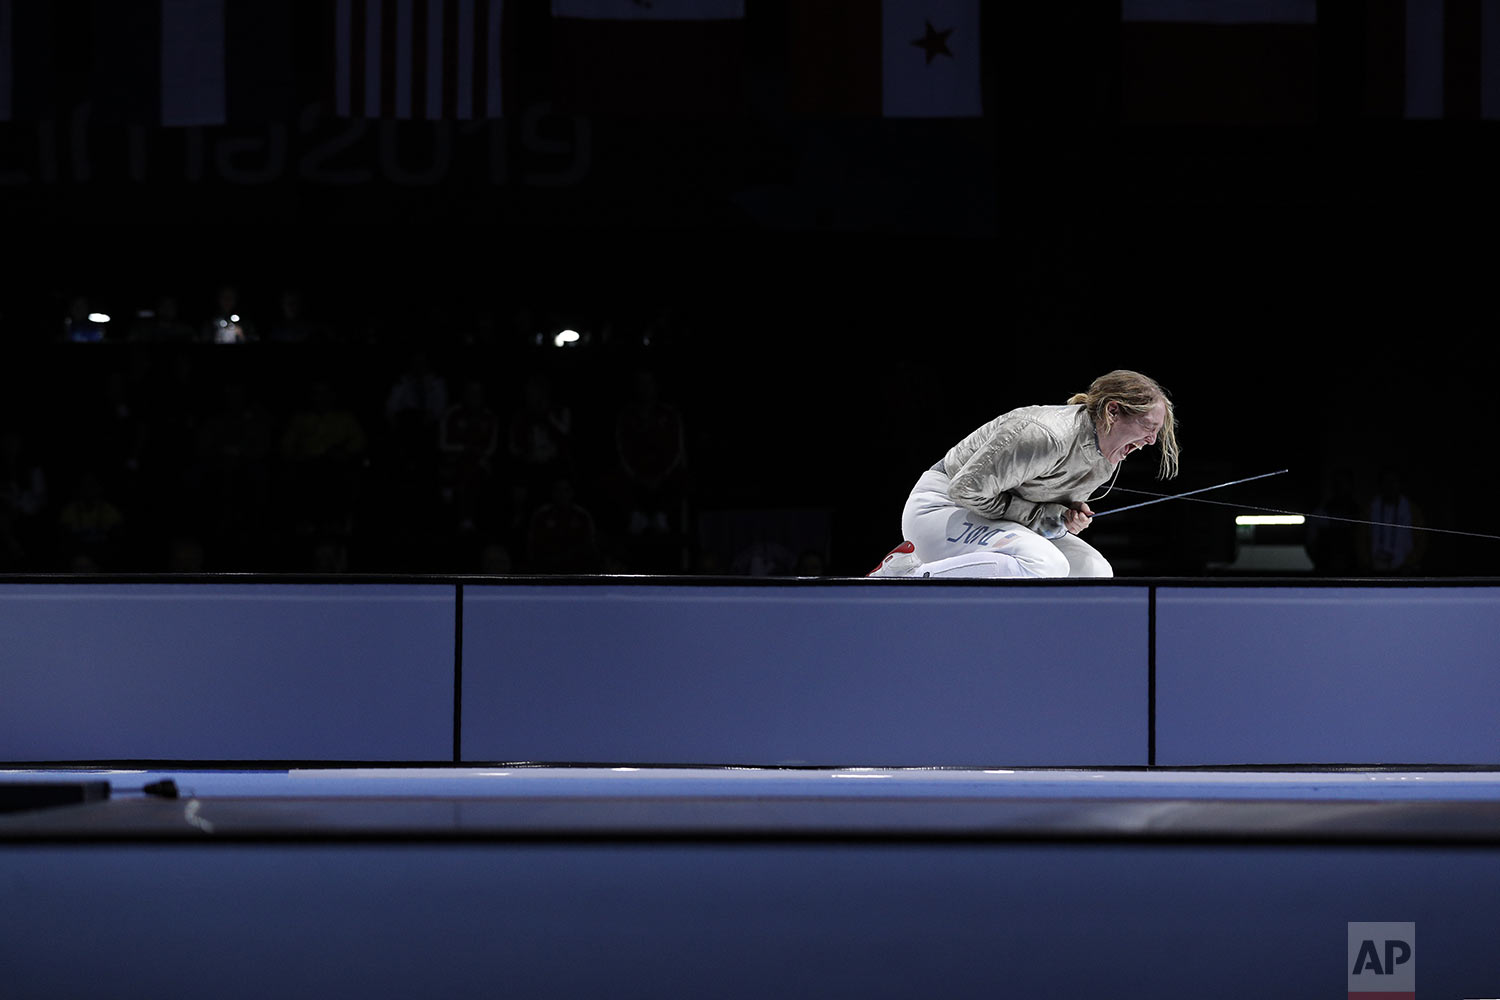 Anne-Elizabeth Stone of the U.S. screams in celebration as she wins the gold medal in her women's sabre individual fencing final bout against Argentina's Maria Perez at the Pan American Games in Lima, Peru, Tuesday, Aug. 6, 2019. (AP Photo/Rebecca Blackwell)